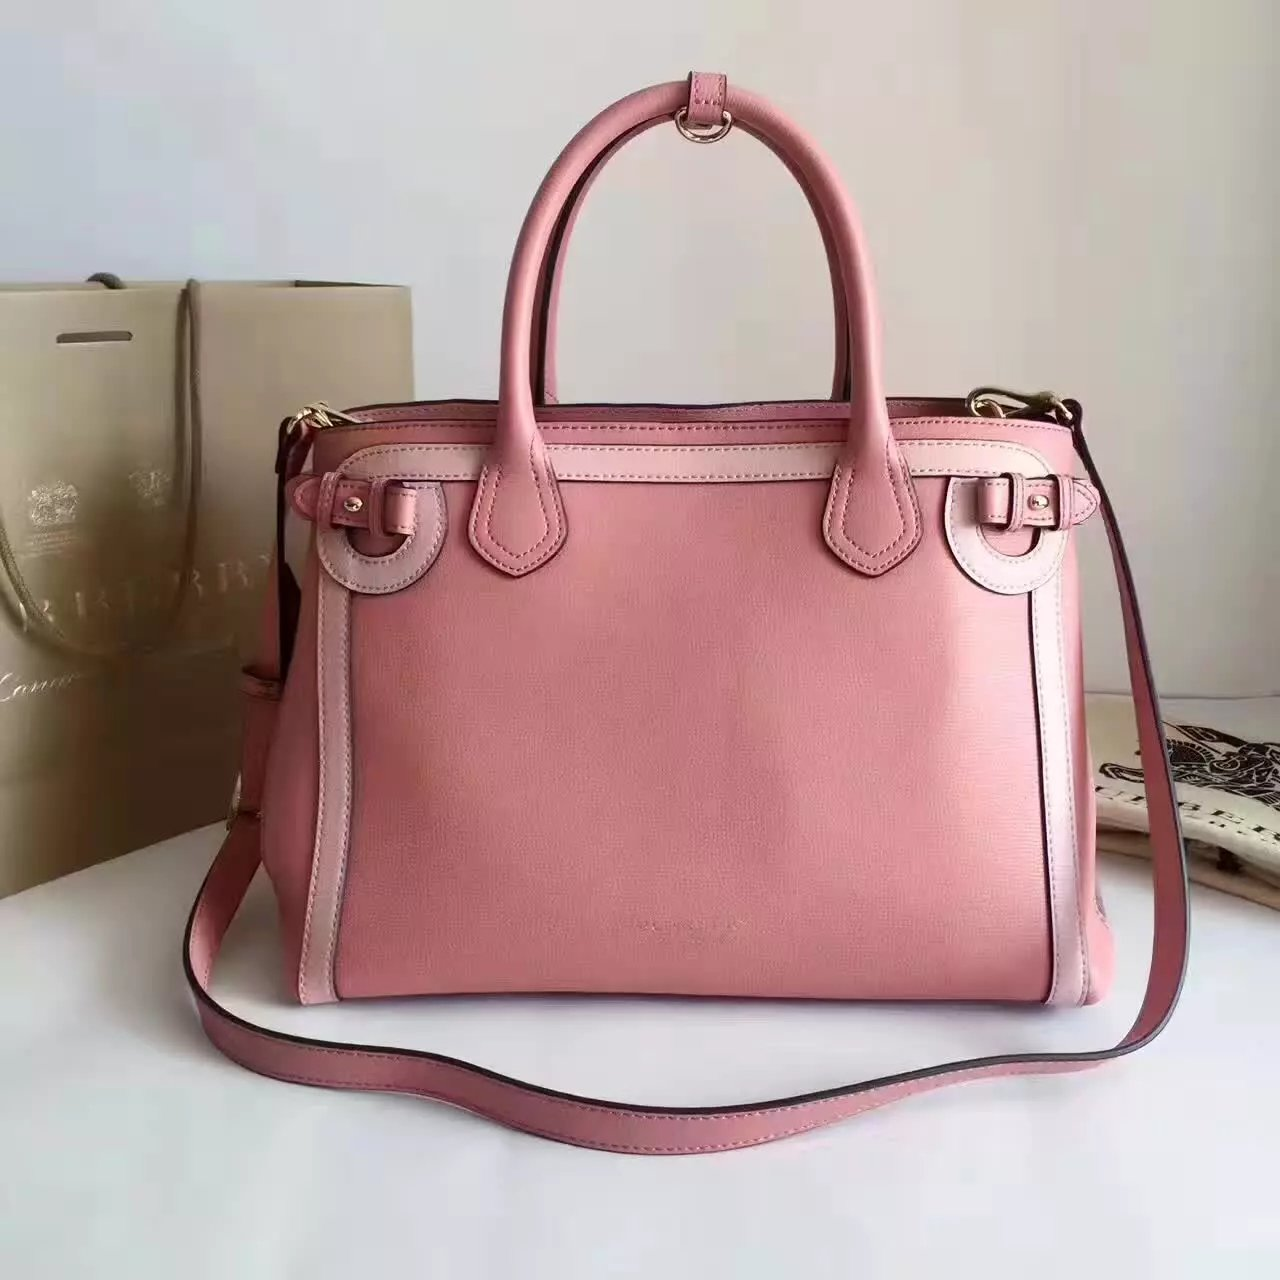 Top Quality Burberry The Banner Medium Leather Signature Bags Pink